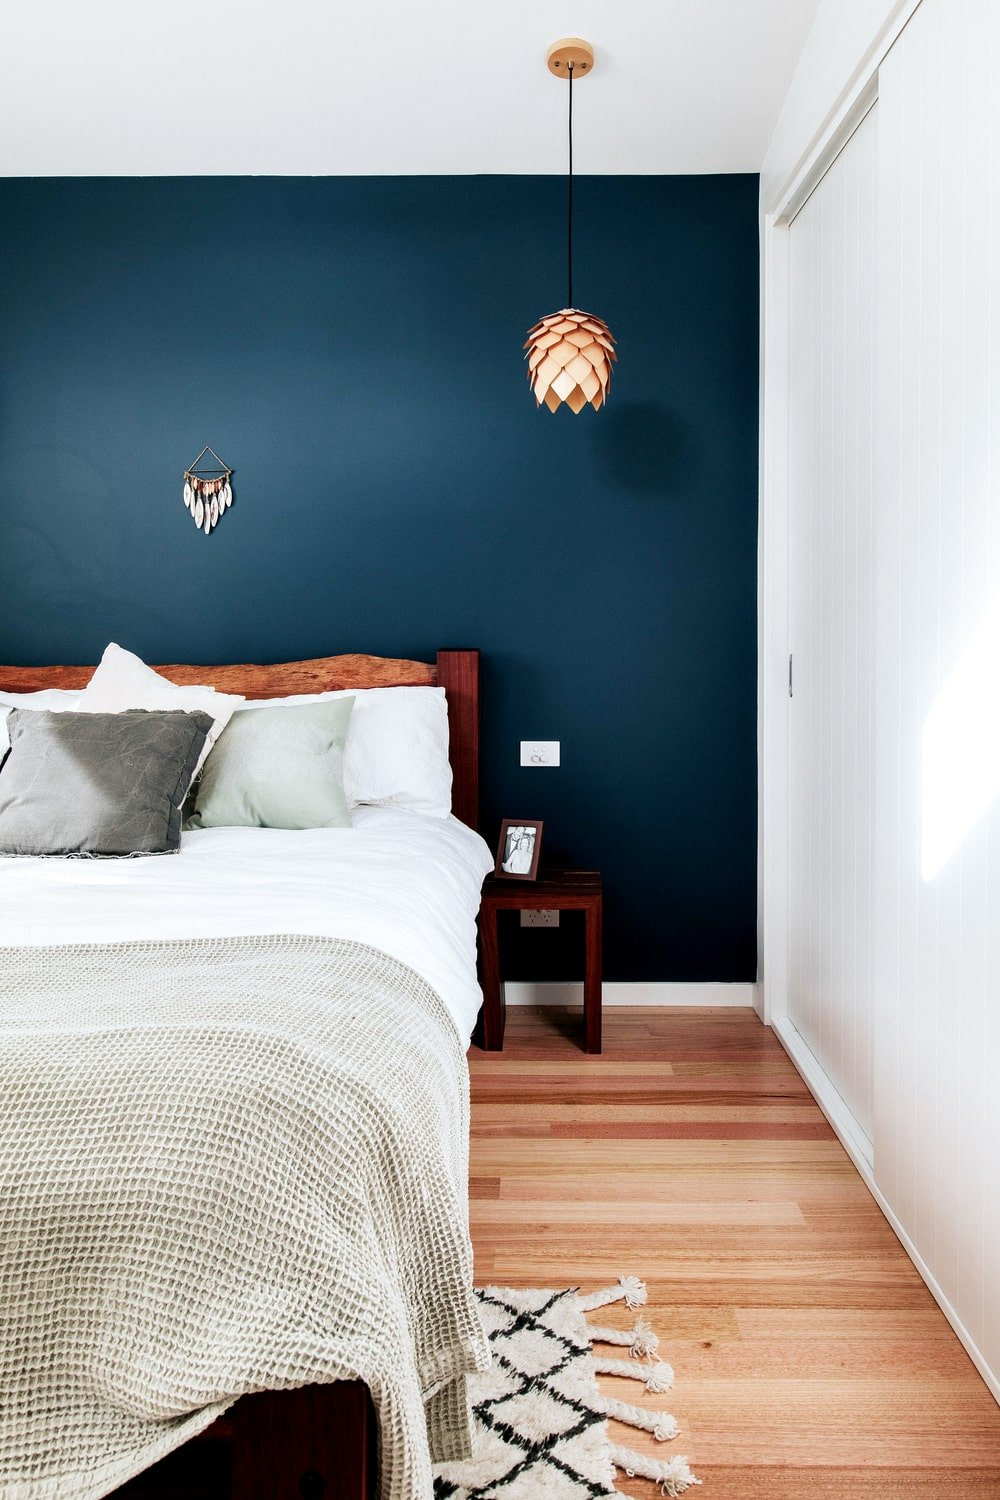 The primary bedroom has a large bed with a wooden headboard that matches with the small bedside table. These are complemented by the matte navy blue wall that makes the decorative pendant light stand out.